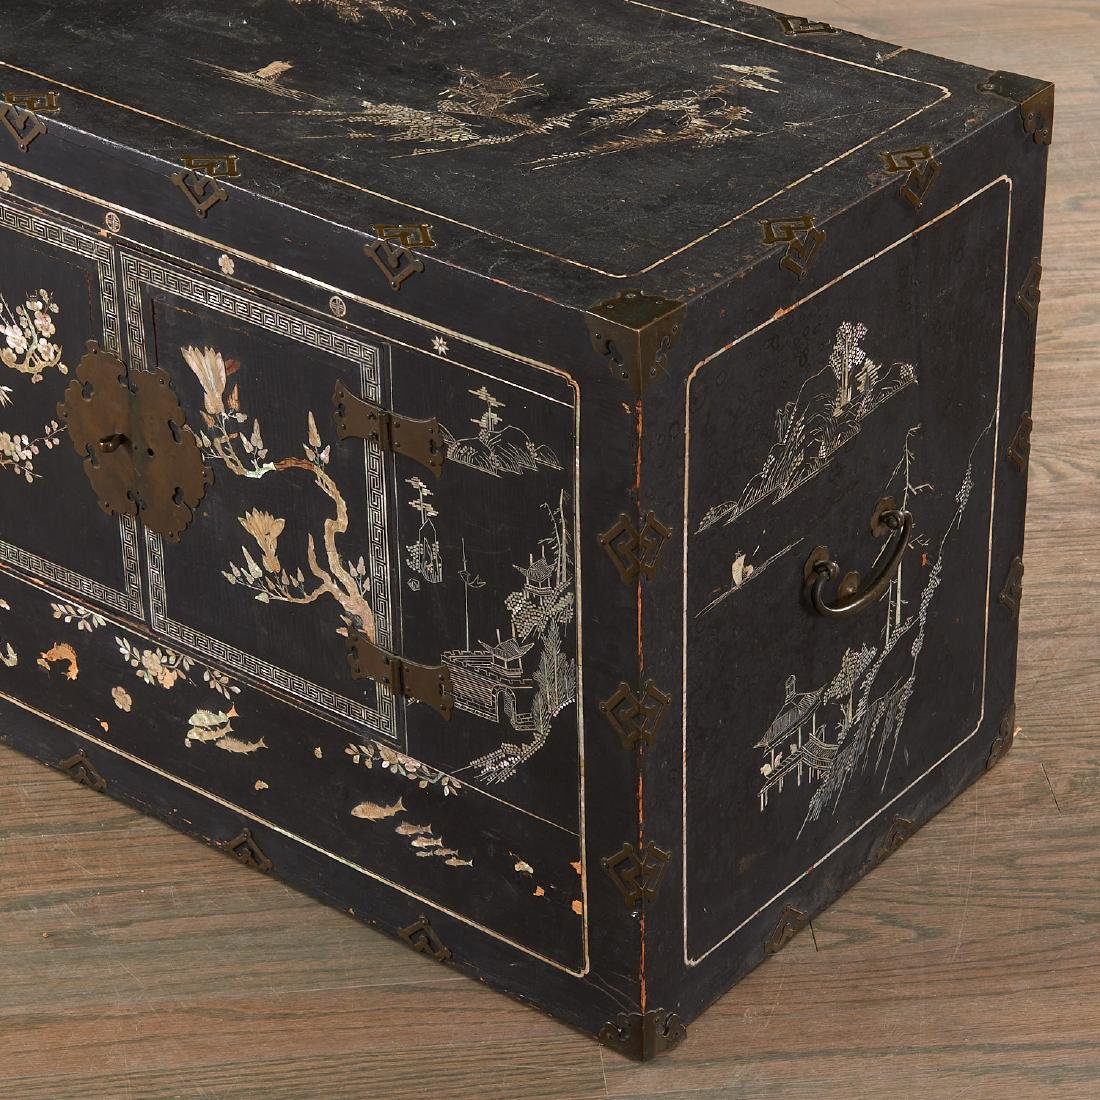 Chinese/Korean mother of pearl inlaid chest - 5